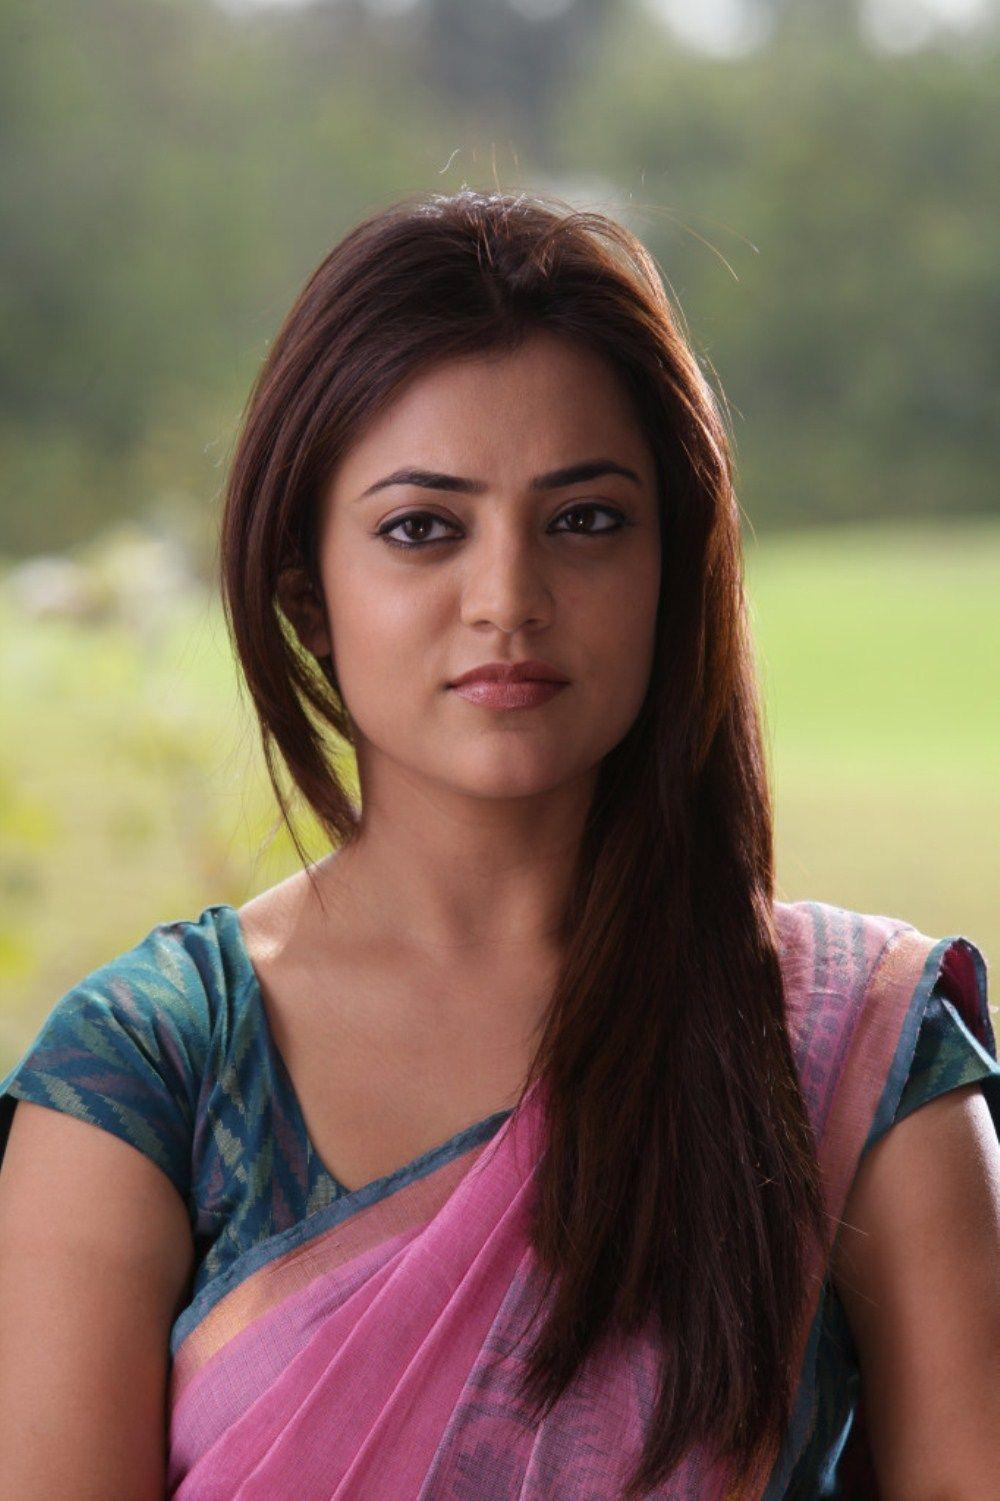 South Indian Actress Wallpapers In Hd - Actress Hd South Indian Imege , HD Wallpaper & Backgrounds